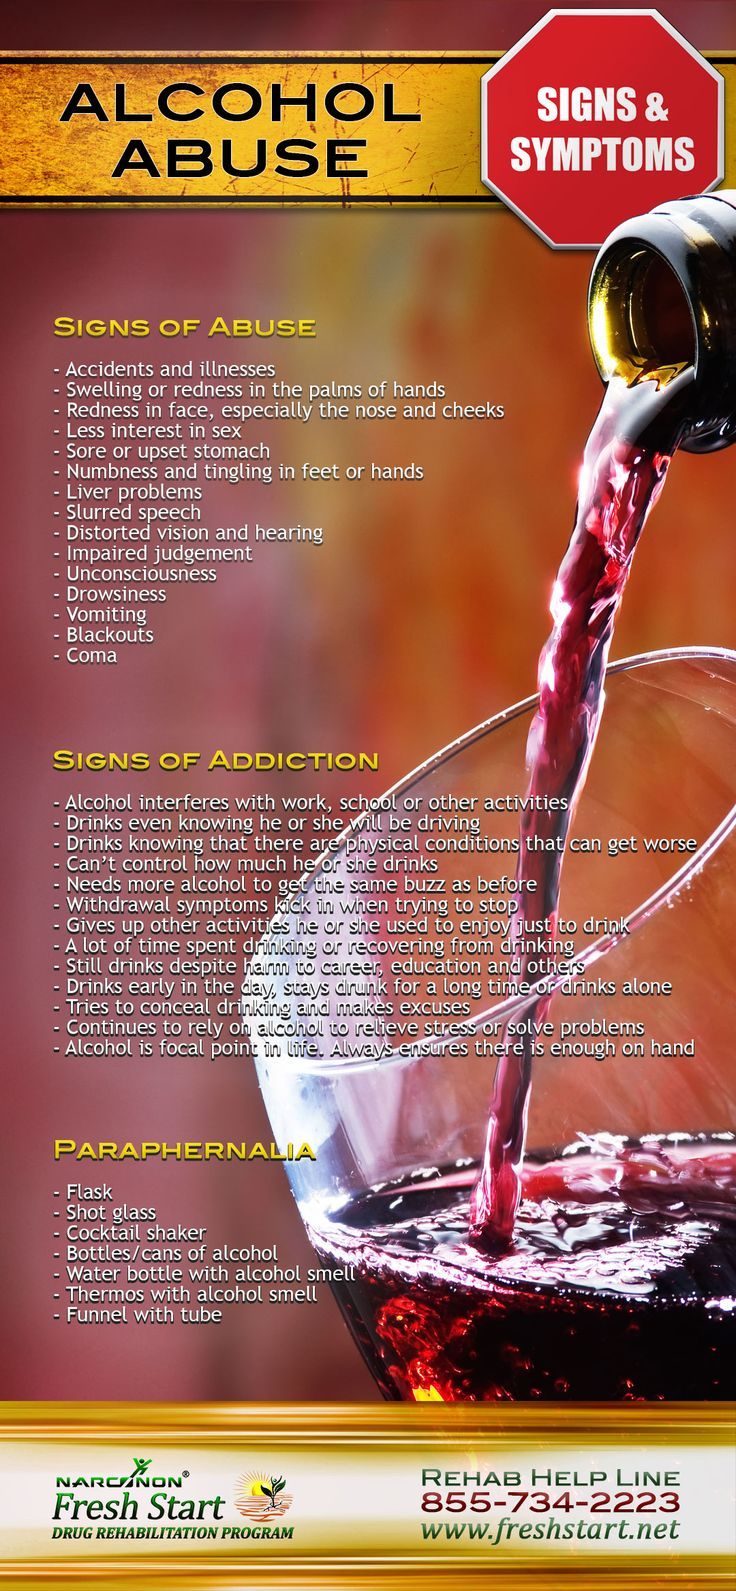 ALCOHOL ABUSE SIGNS AND SYMPTOMS #alcohol #abuse #addiction #signs Learn more about alcohol abuse https://pastthetippingpoint.net/drug-abuse-help/alcohol-abuse/